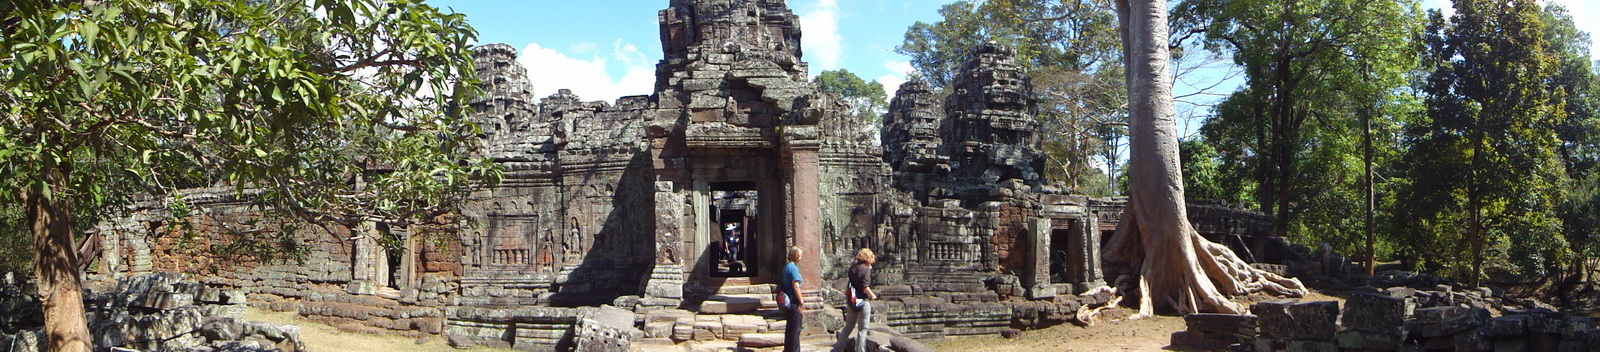 D Banteay Kdei Temple Gopuram W Entry towers main sanctuary 02